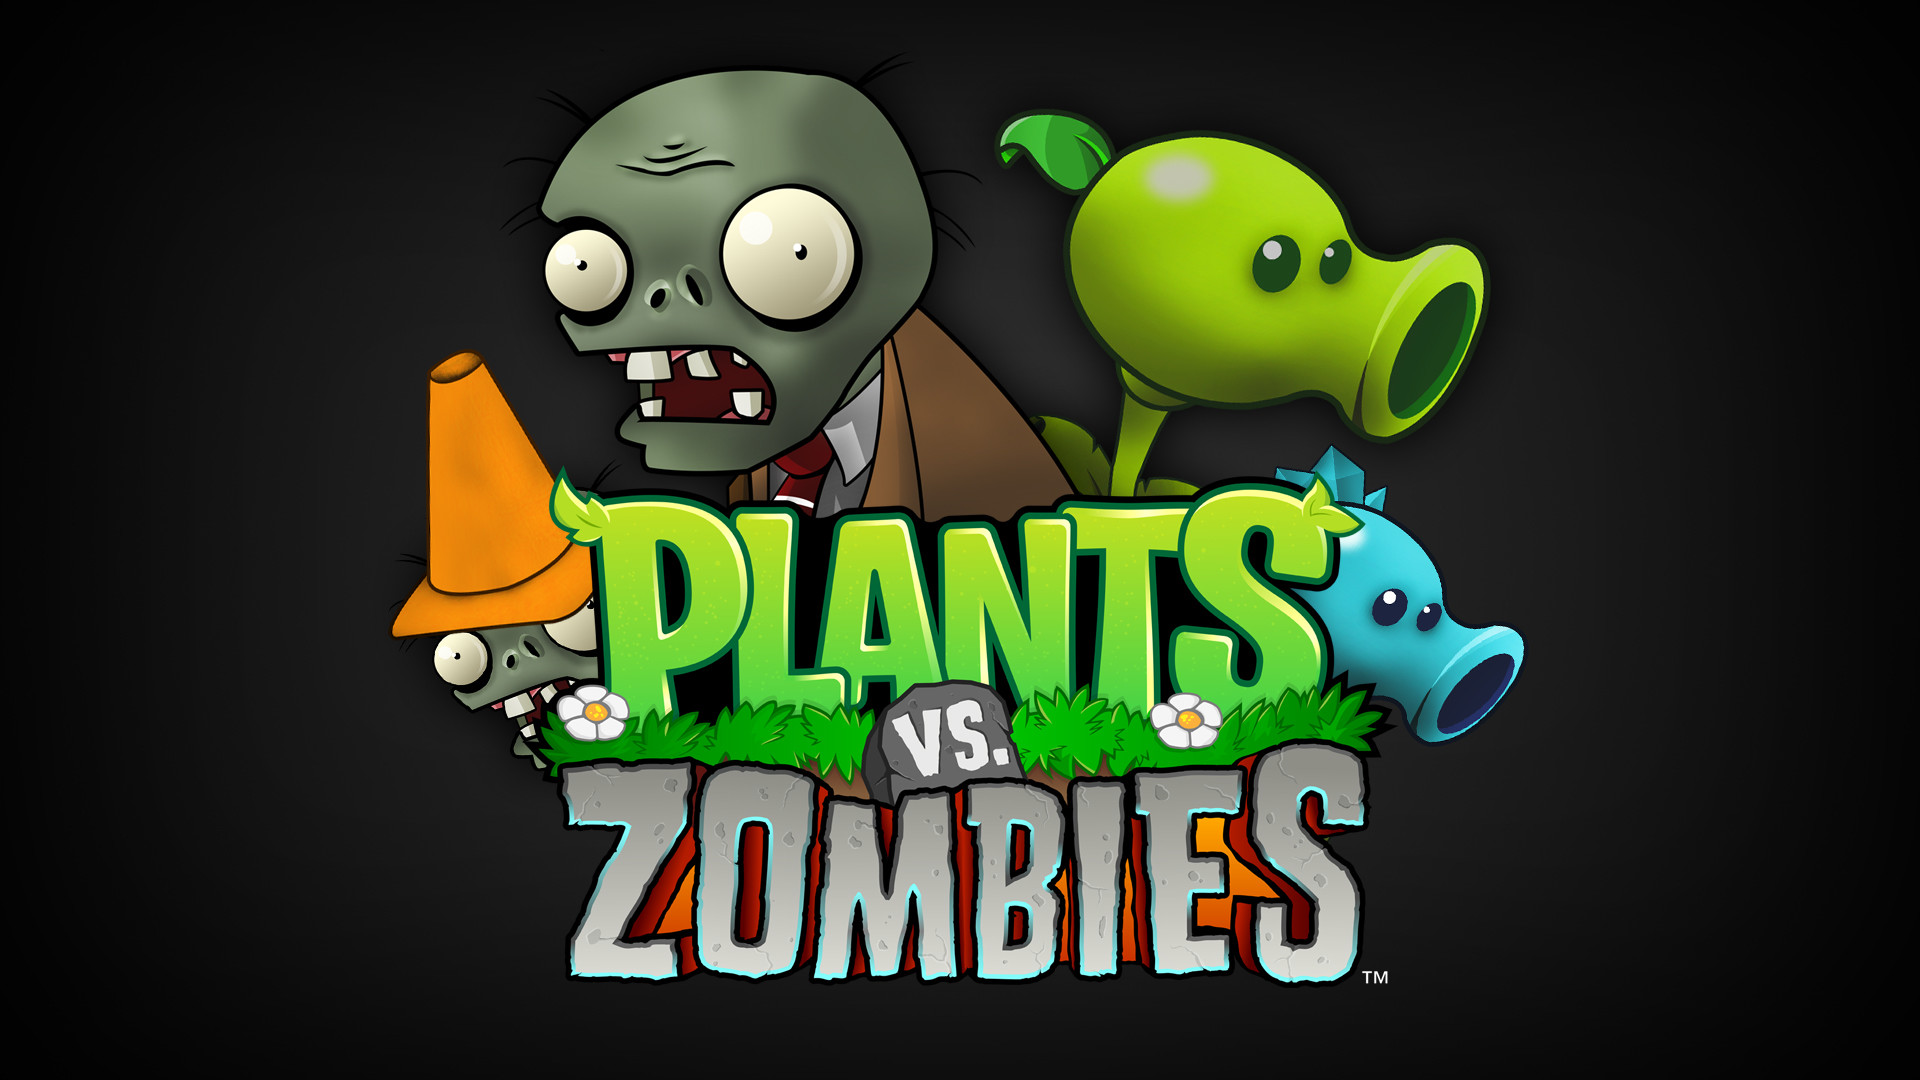 Res: 1920x1080, Plants vs Zombies Wallpaper for Iphone